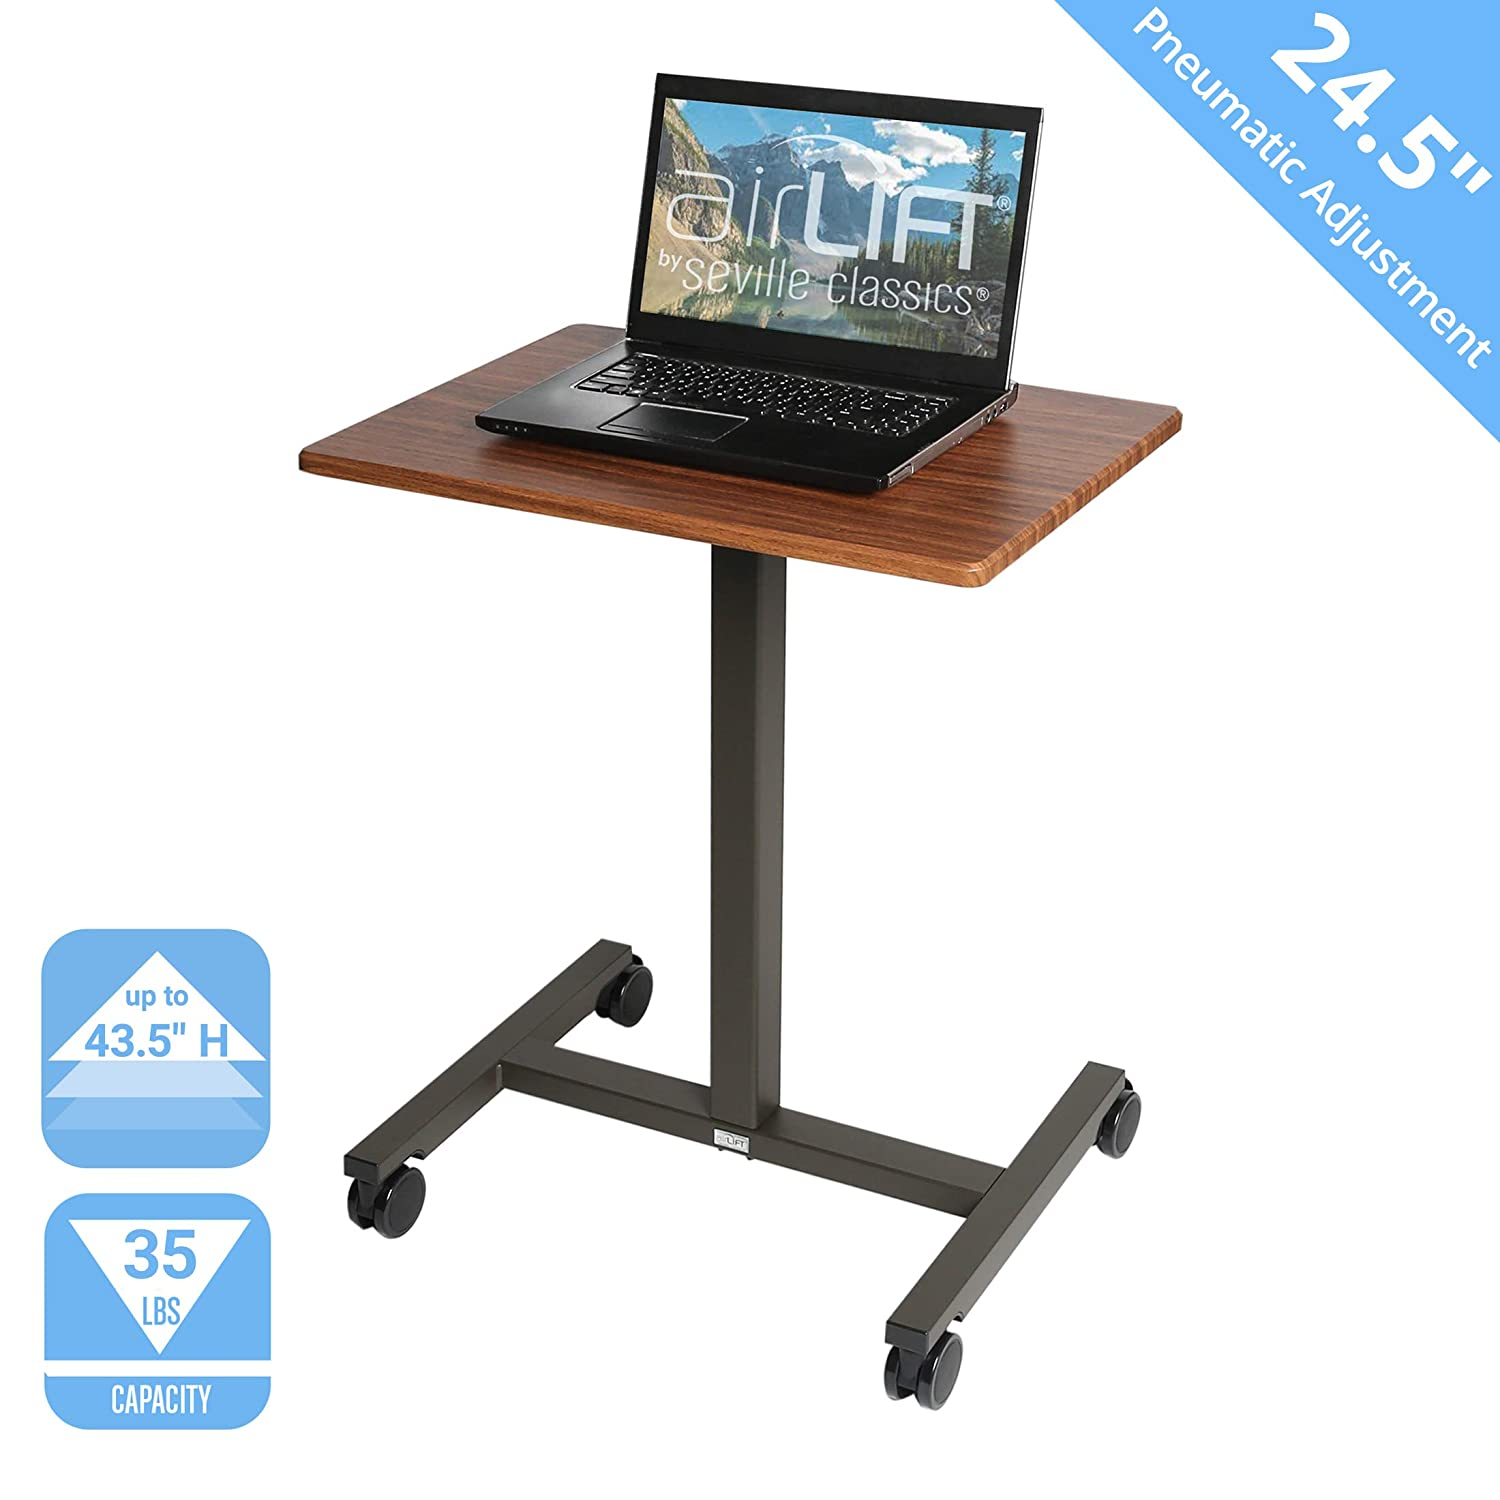 Super Seville Classics Airlift Pneumatic Laptop Computer Mobile Desk Cart Height Adjustable From 29 3 To 43 5 H 24 Walnut Download Free Architecture Designs Sospemadebymaigaardcom